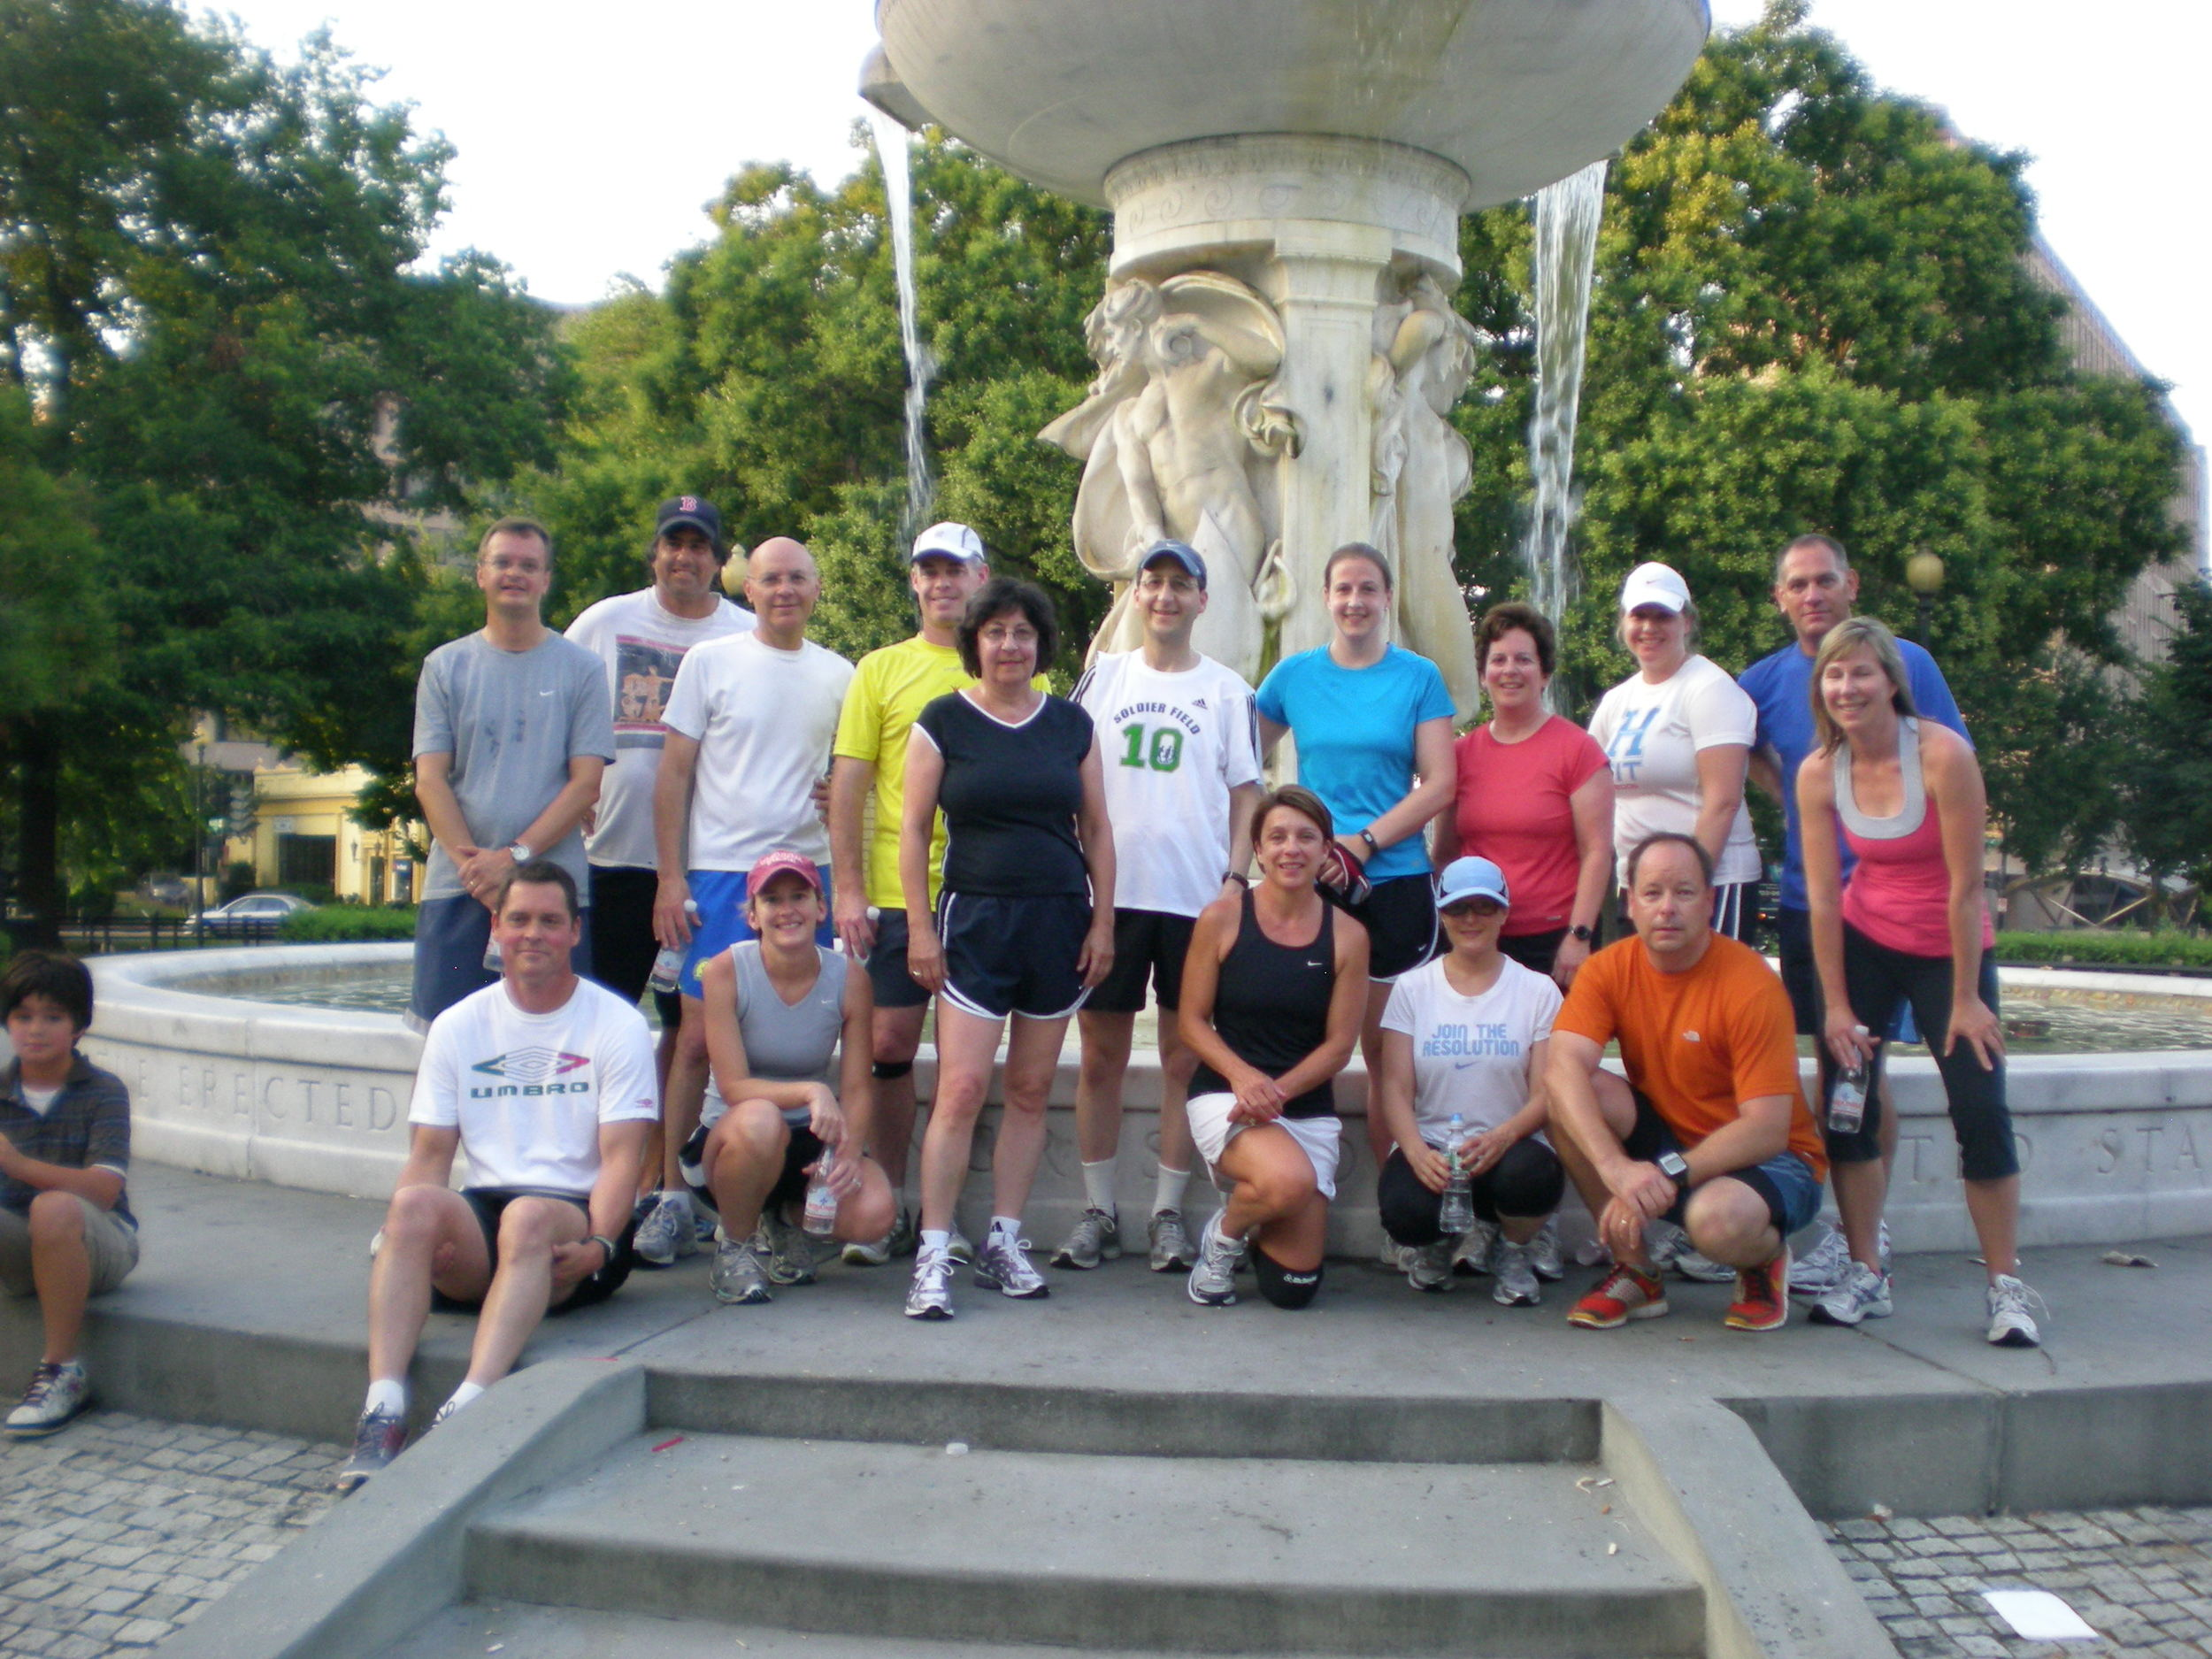 ORGANIZE YOUR NEXT CORPORATE OR SOCIAL GROUP RUNNING TOUR IN WASHINGTON DC